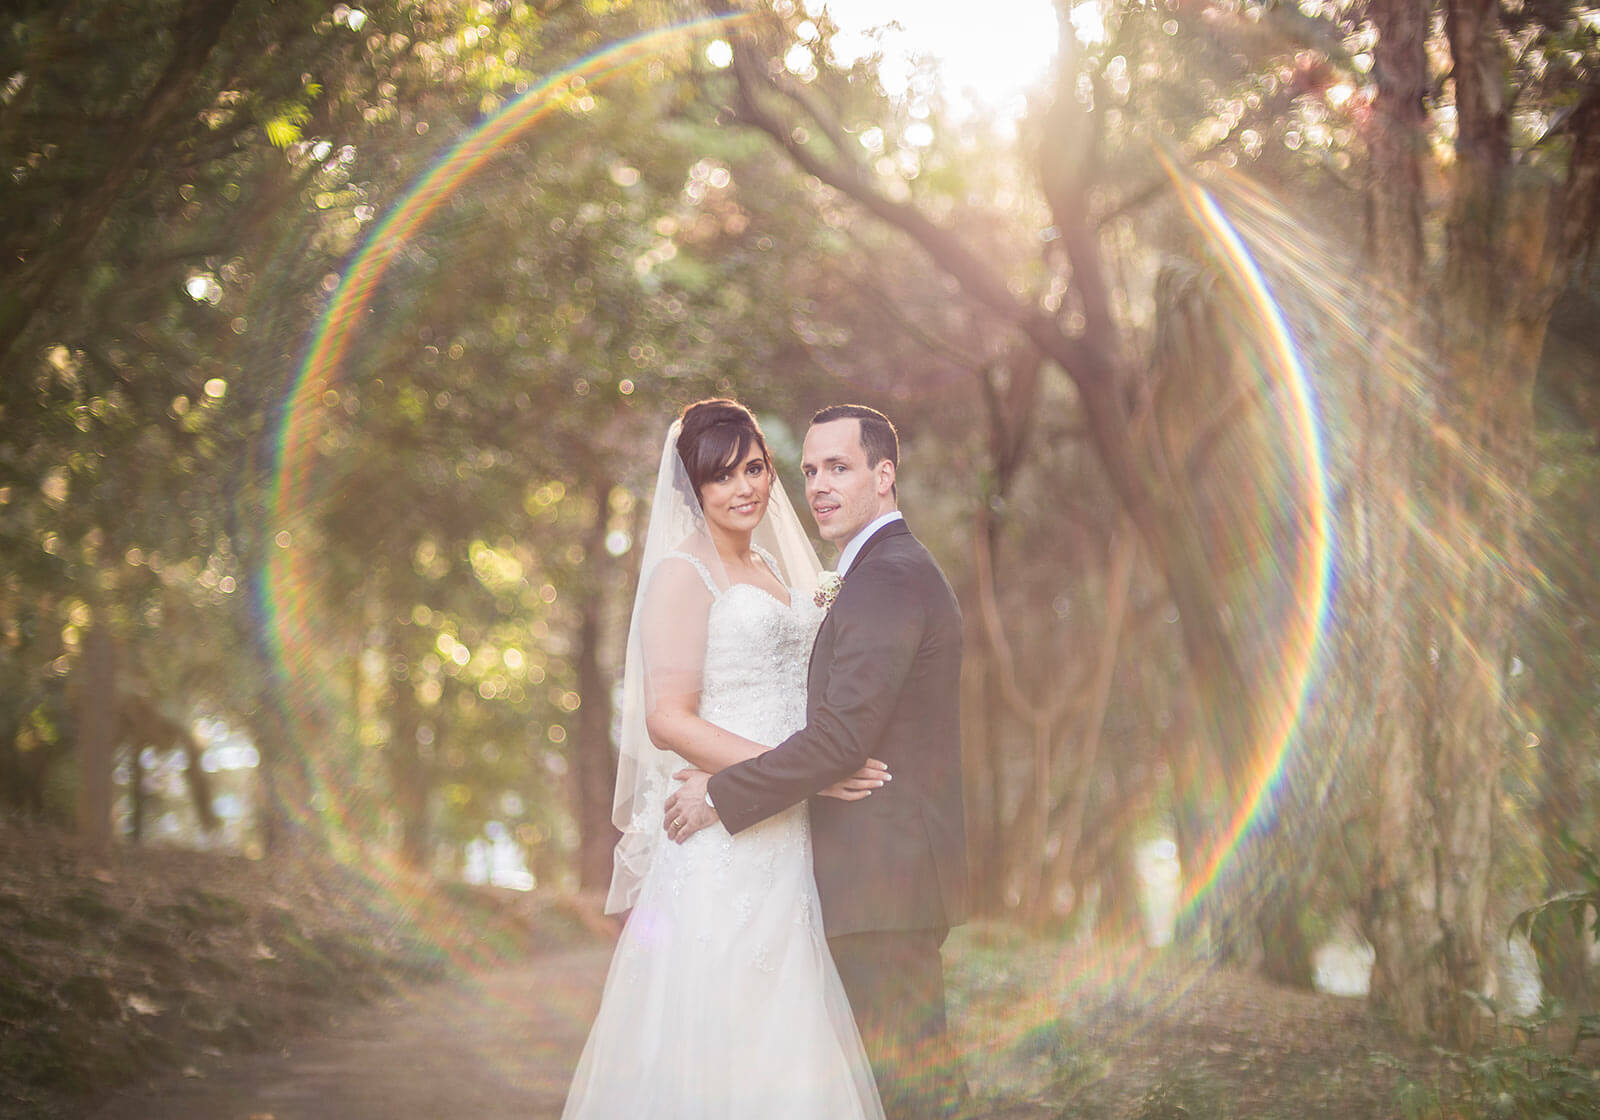 John Oldham Park, Perth Wedding Photography by Peter Adams-Shawn